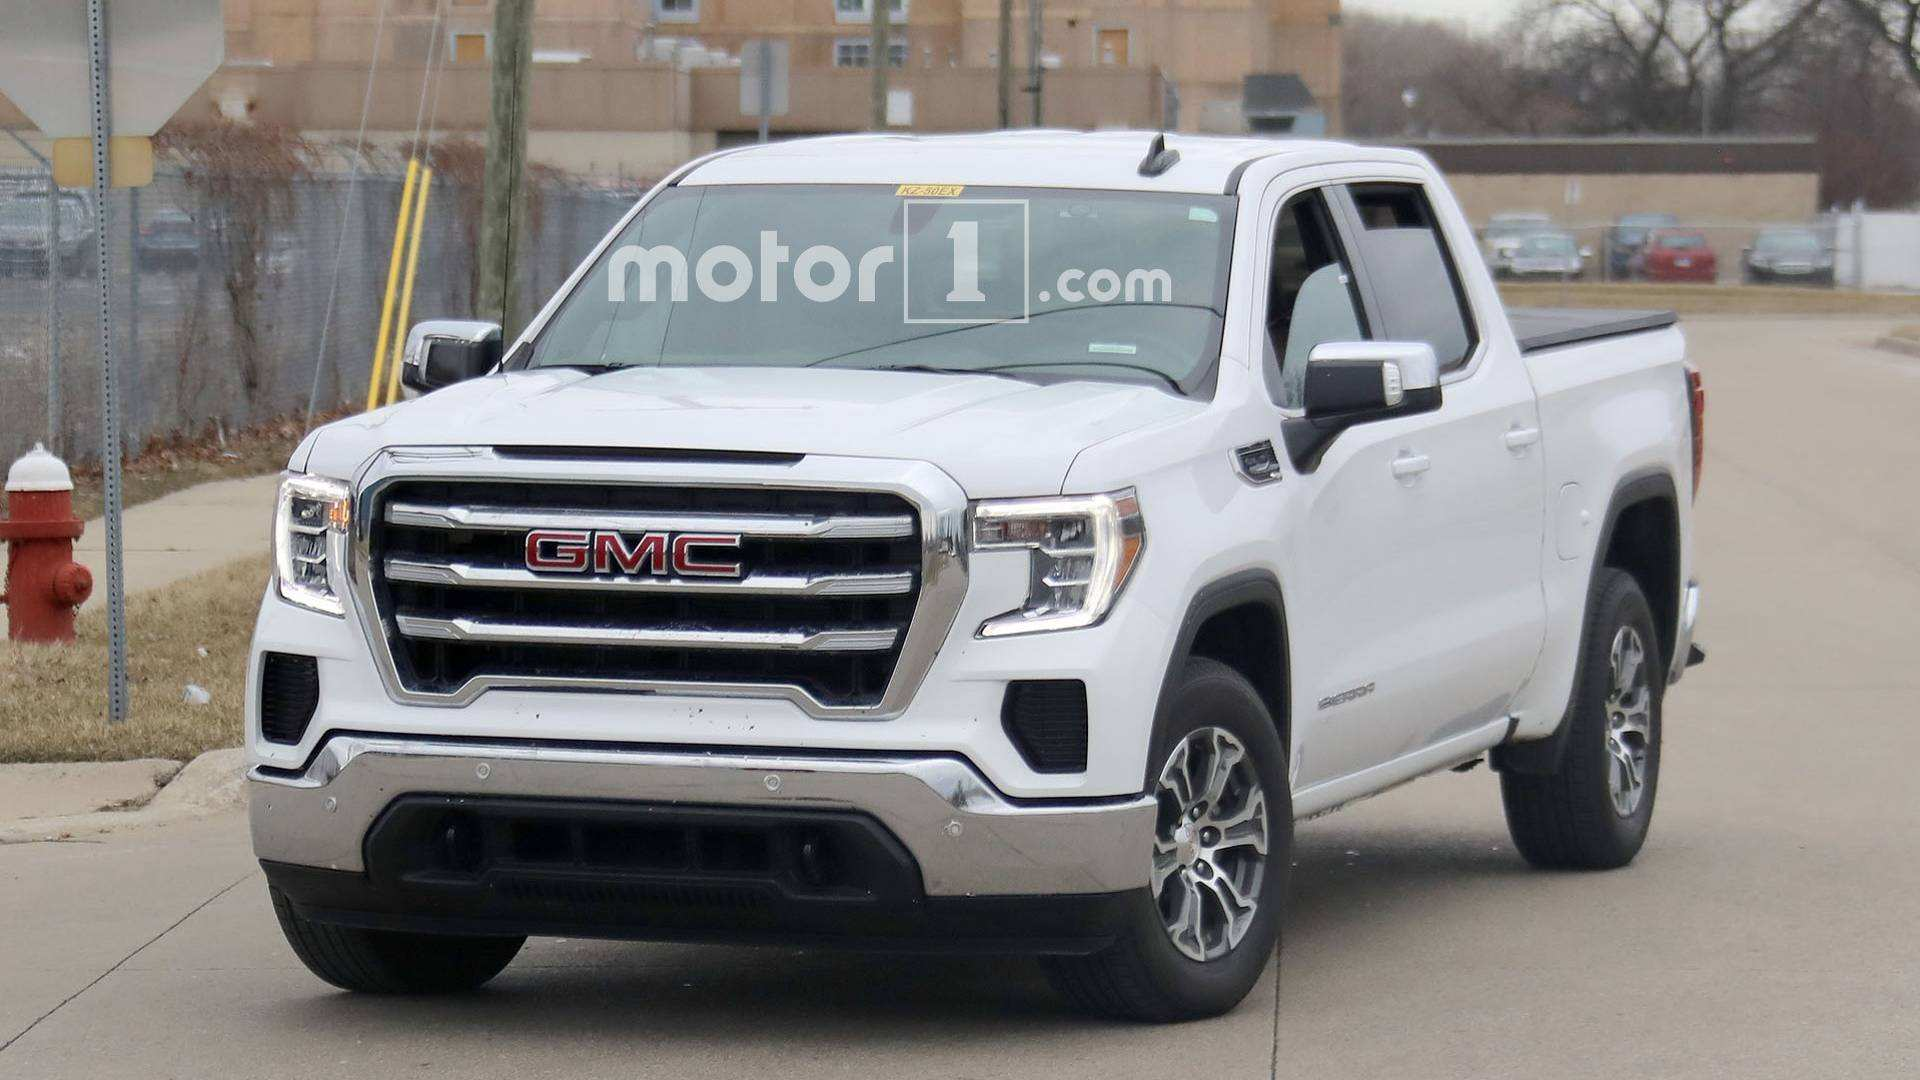 11 New Best 2019 Gmc Engine Options Review And Price Research New by Best 2019 Gmc Engine Options Review And Price